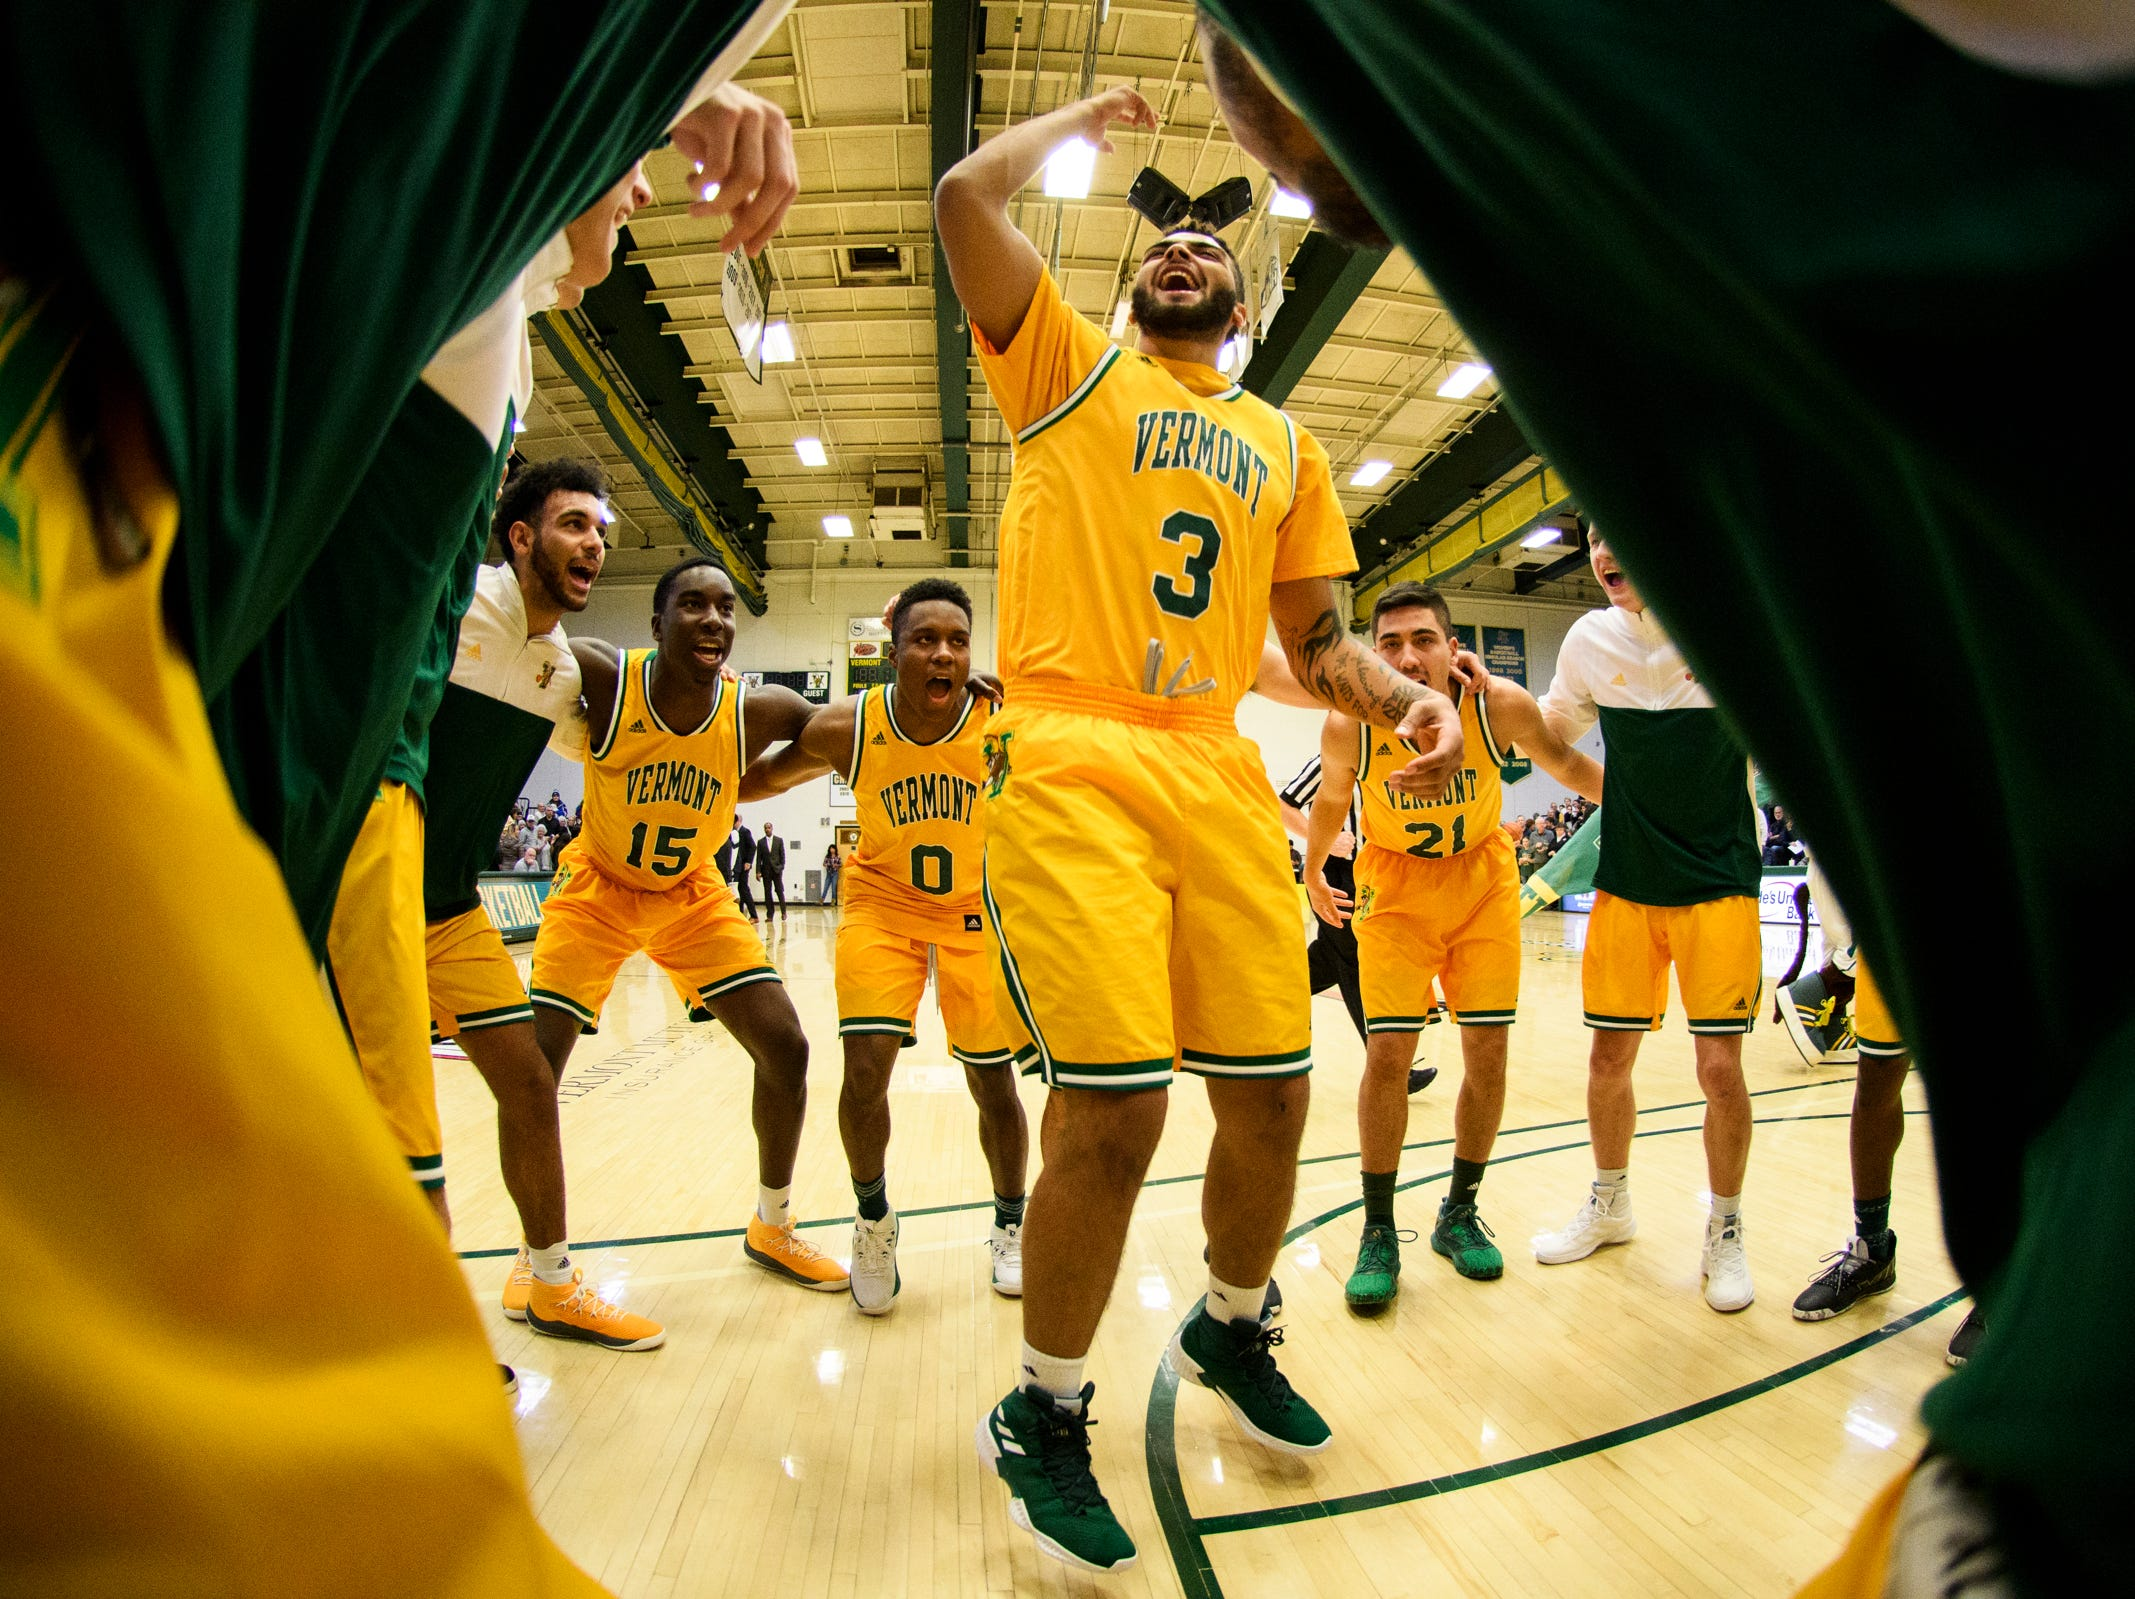 Vermont forward Anthony Lamb (3) pumps up the team in the huddle during the men's basketball game between the Yale Bulldogs and the Vermont Catamounts at Patrick Gym on Wednesday night November 21, 2018 in Burlington.